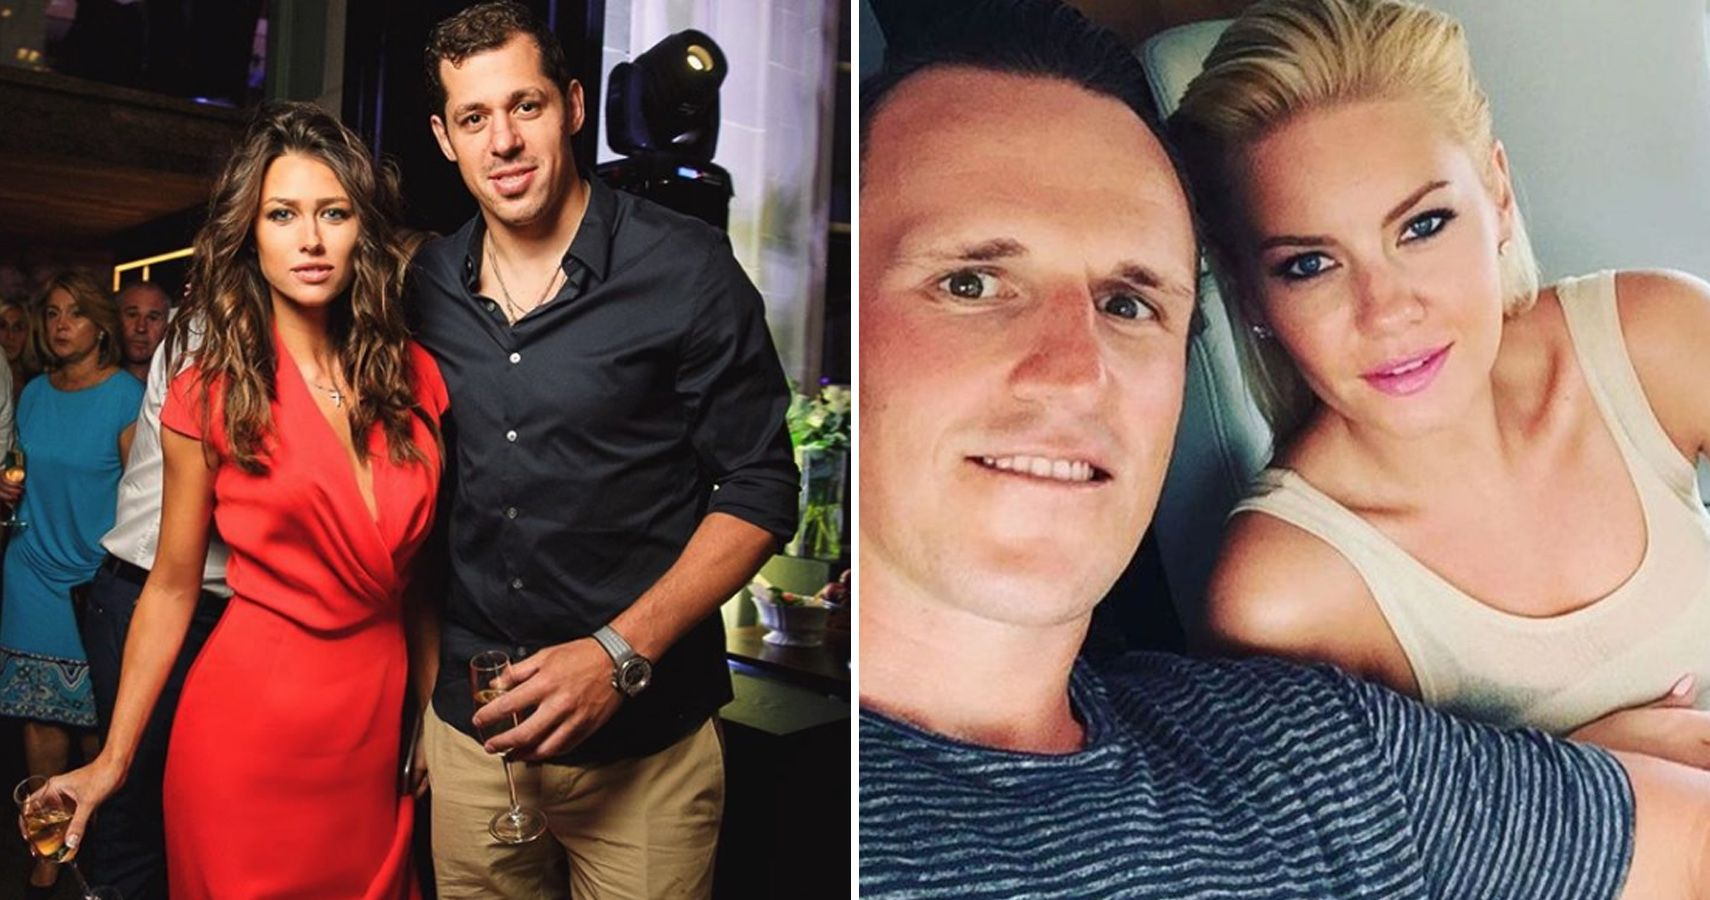 Nhl players dating celebrities